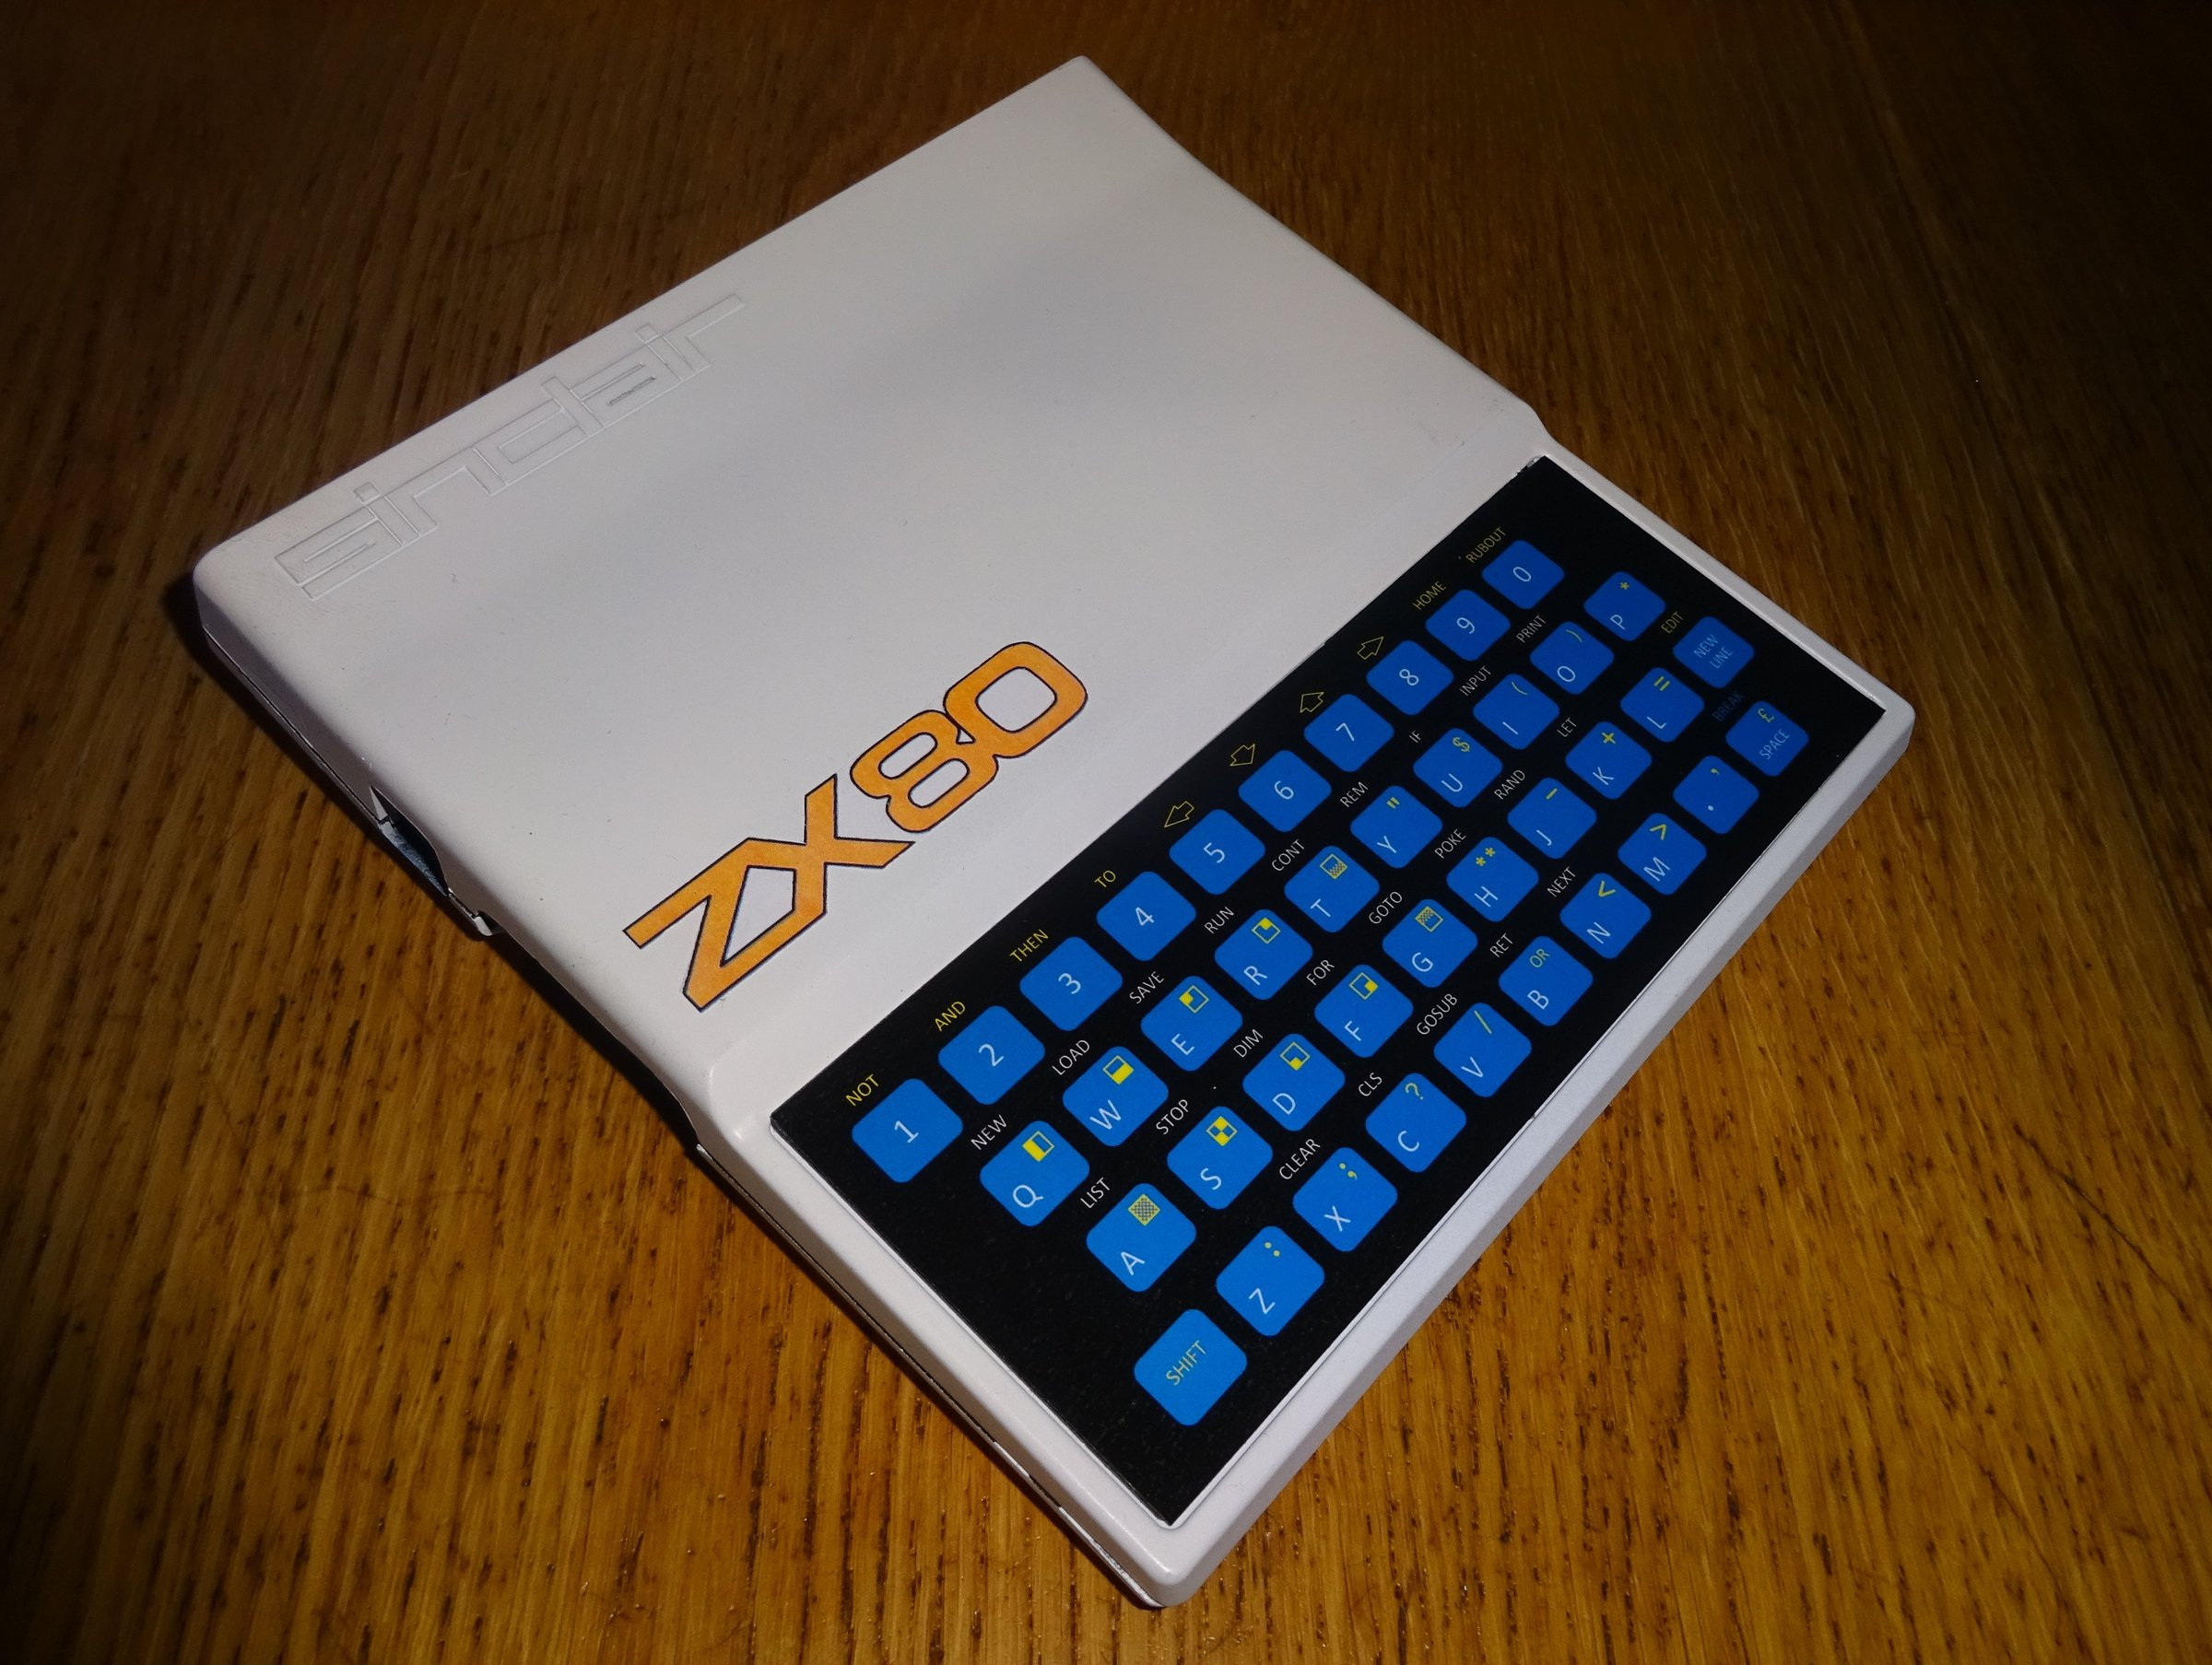 Minstrel ZX80 Clone from Tynemouth Software on Tindie